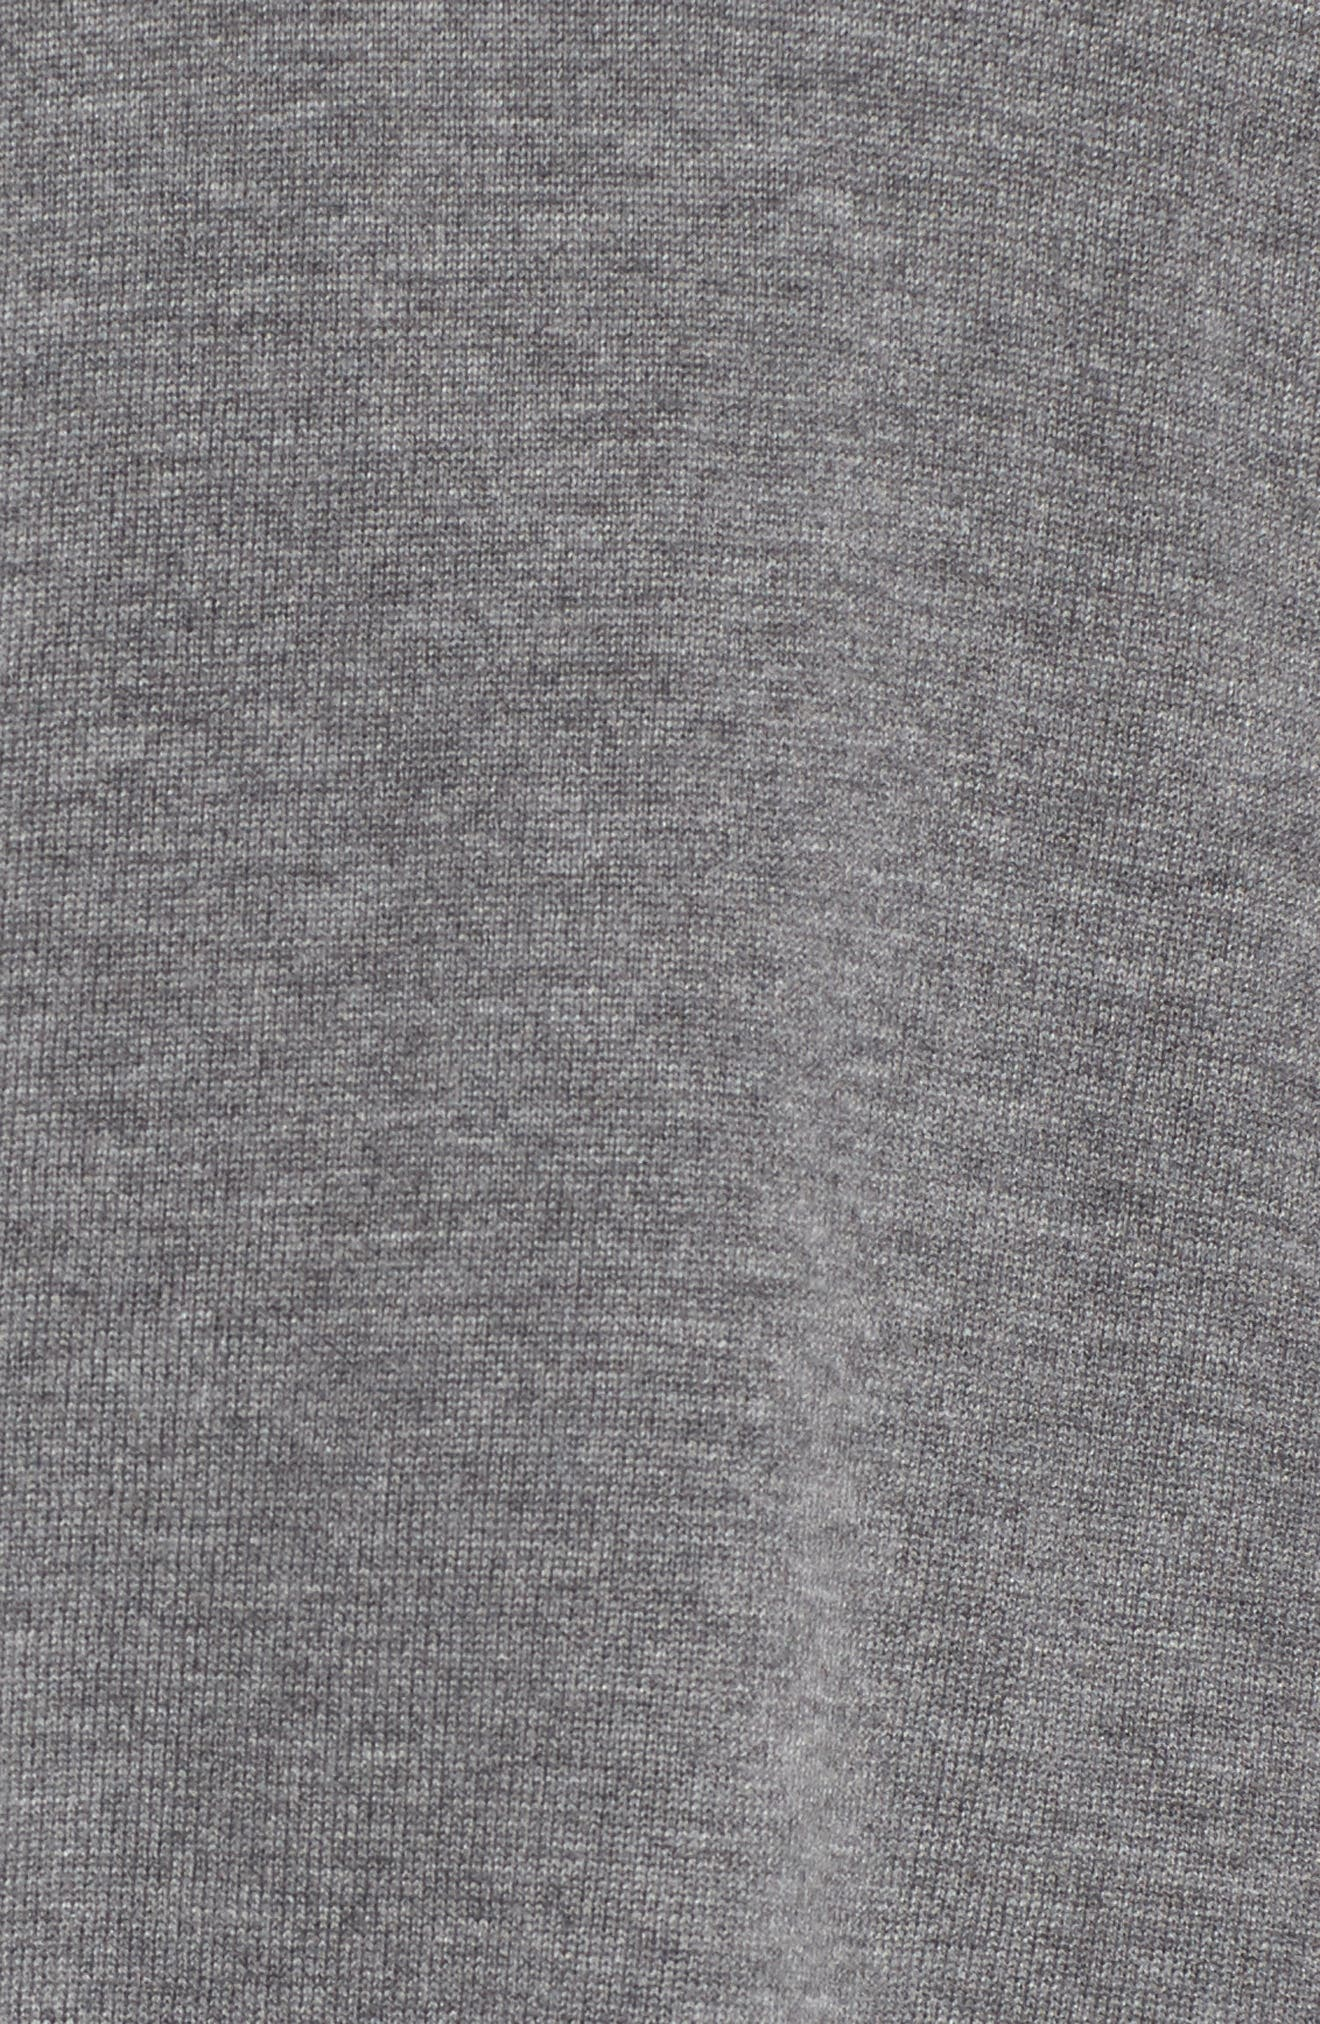 Woven Sleeve Sweater,                             Alternate thumbnail 5, color,                             030